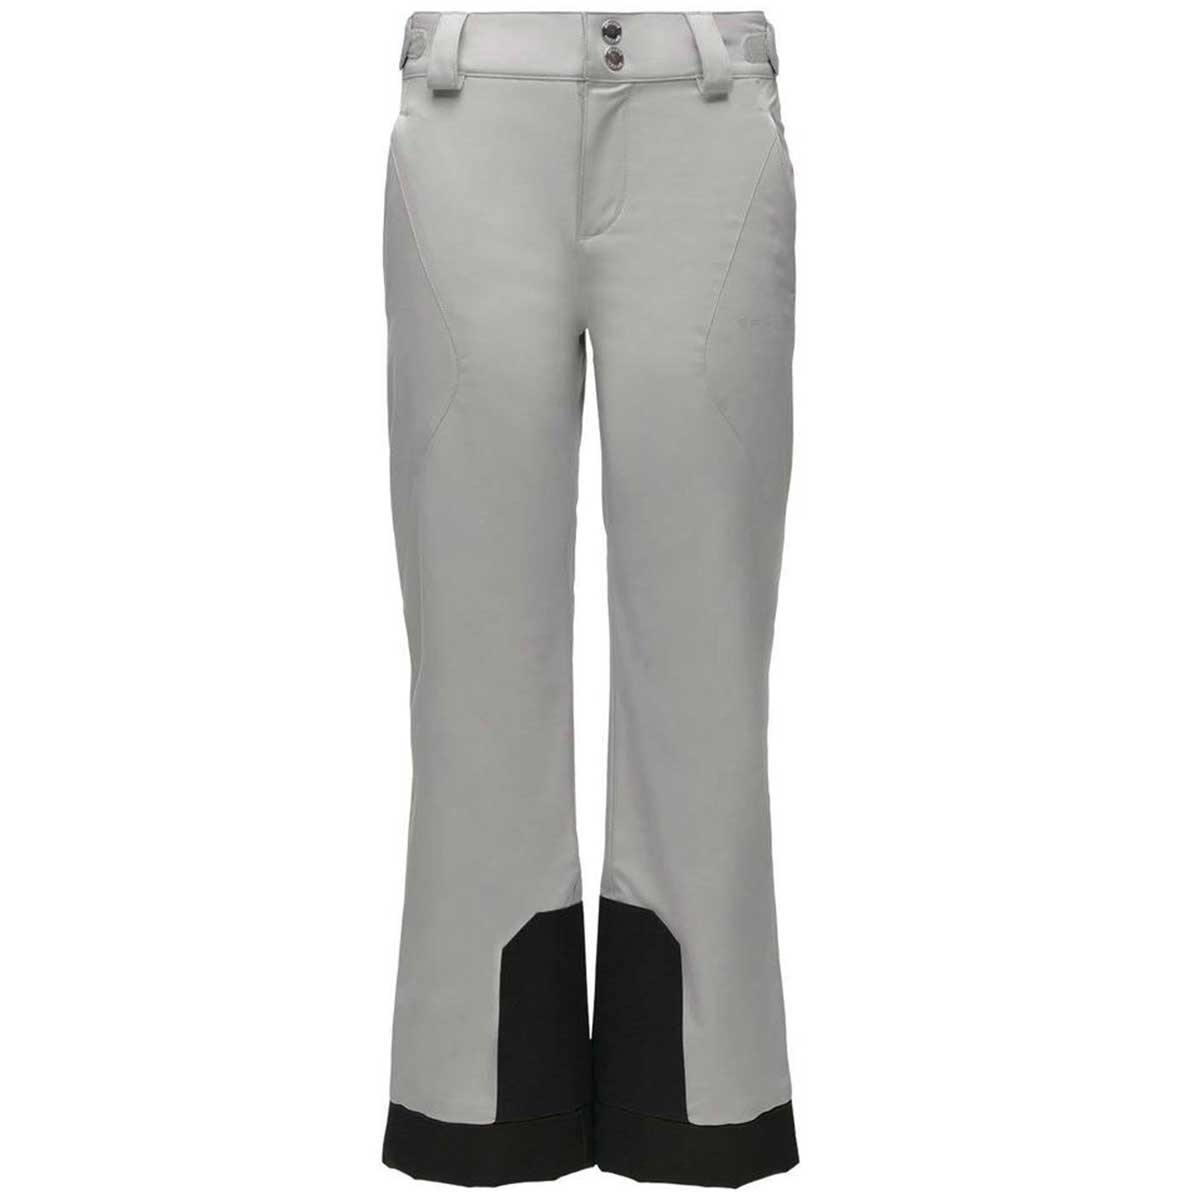 Spyder girls' Olympia Pant in Silver front view